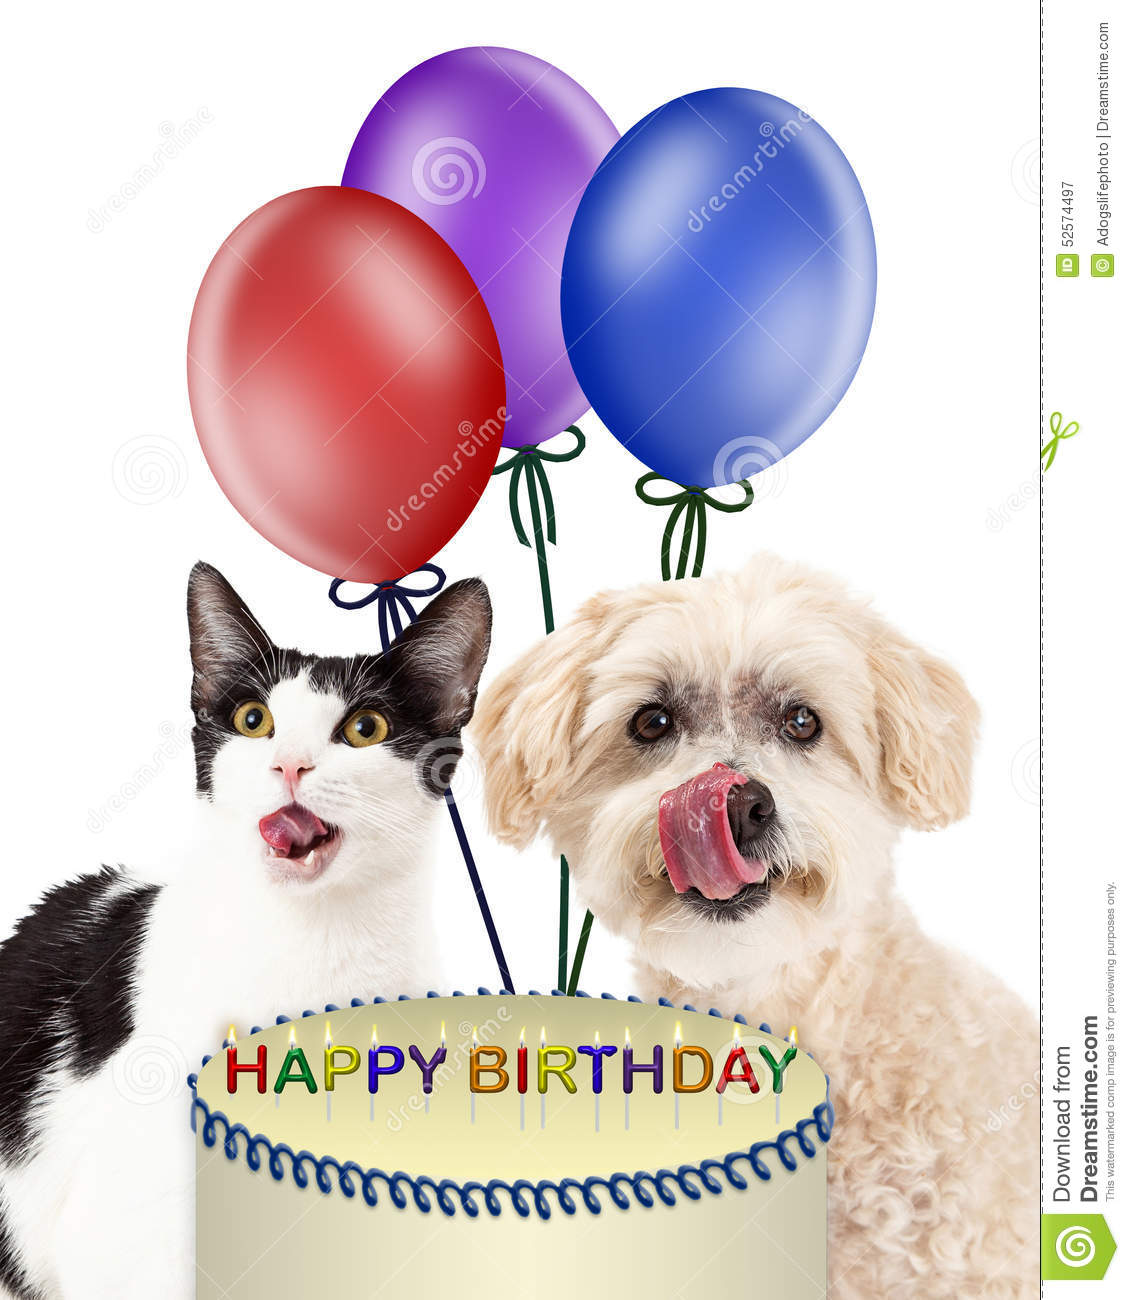 Cat and dog birthday party clipart free banner freeuse stock Happy Birthday Cats And Dogs — Lovely Meme banner freeuse stock